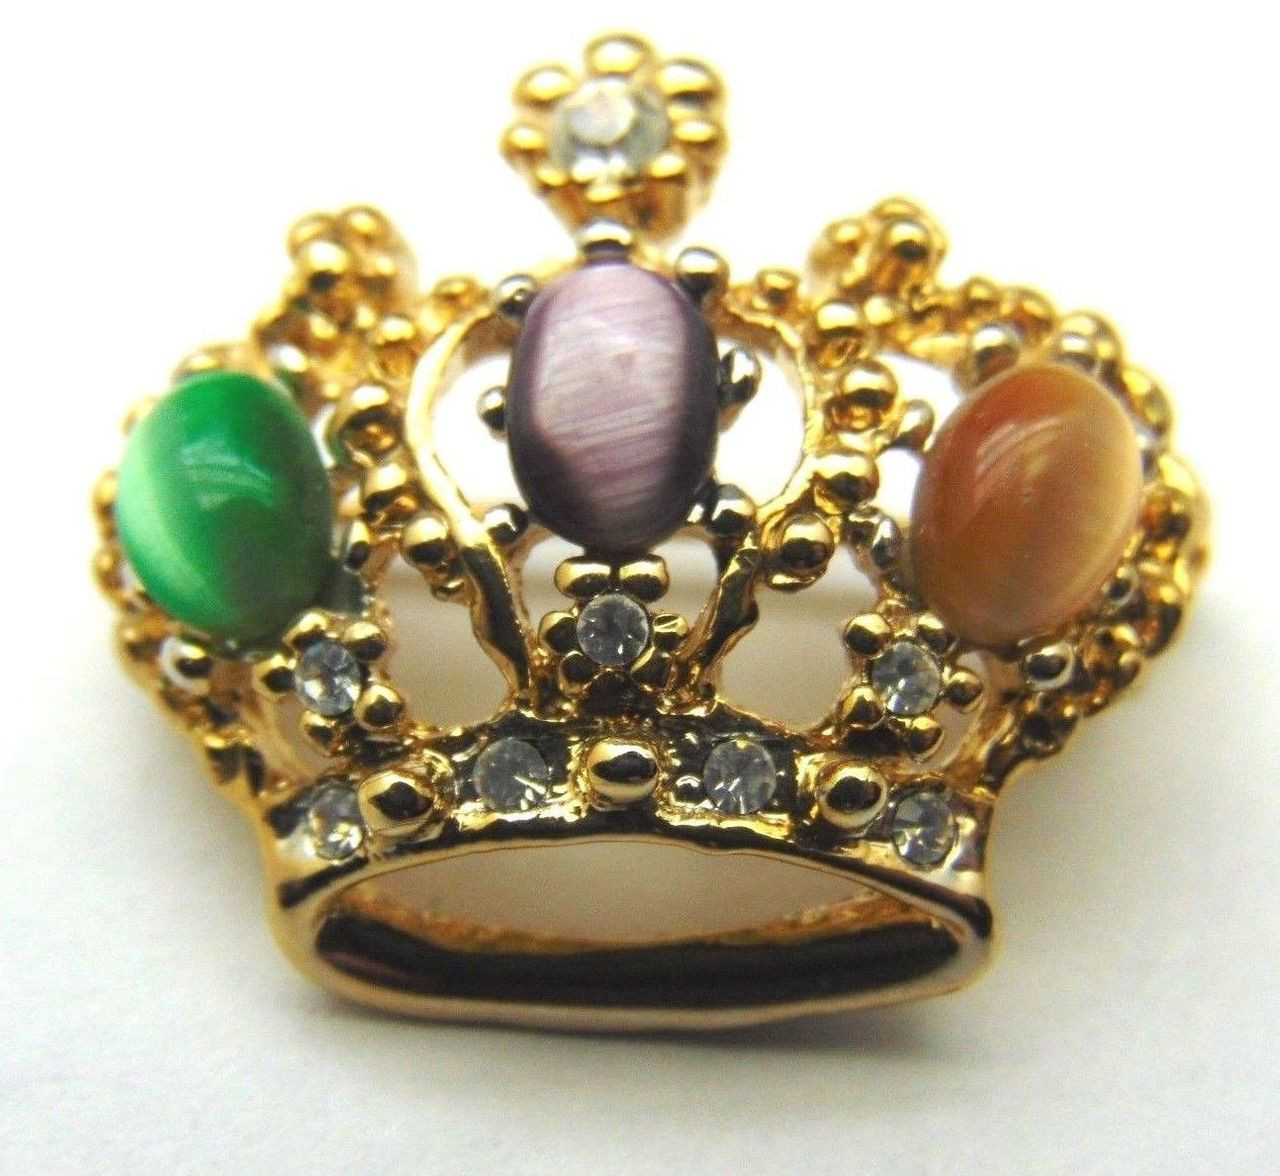 e0ea4bf8acd7 Regal CROWN Pin Queen Princess Tiger EYE RHINESTONE Crystal Brooch ...